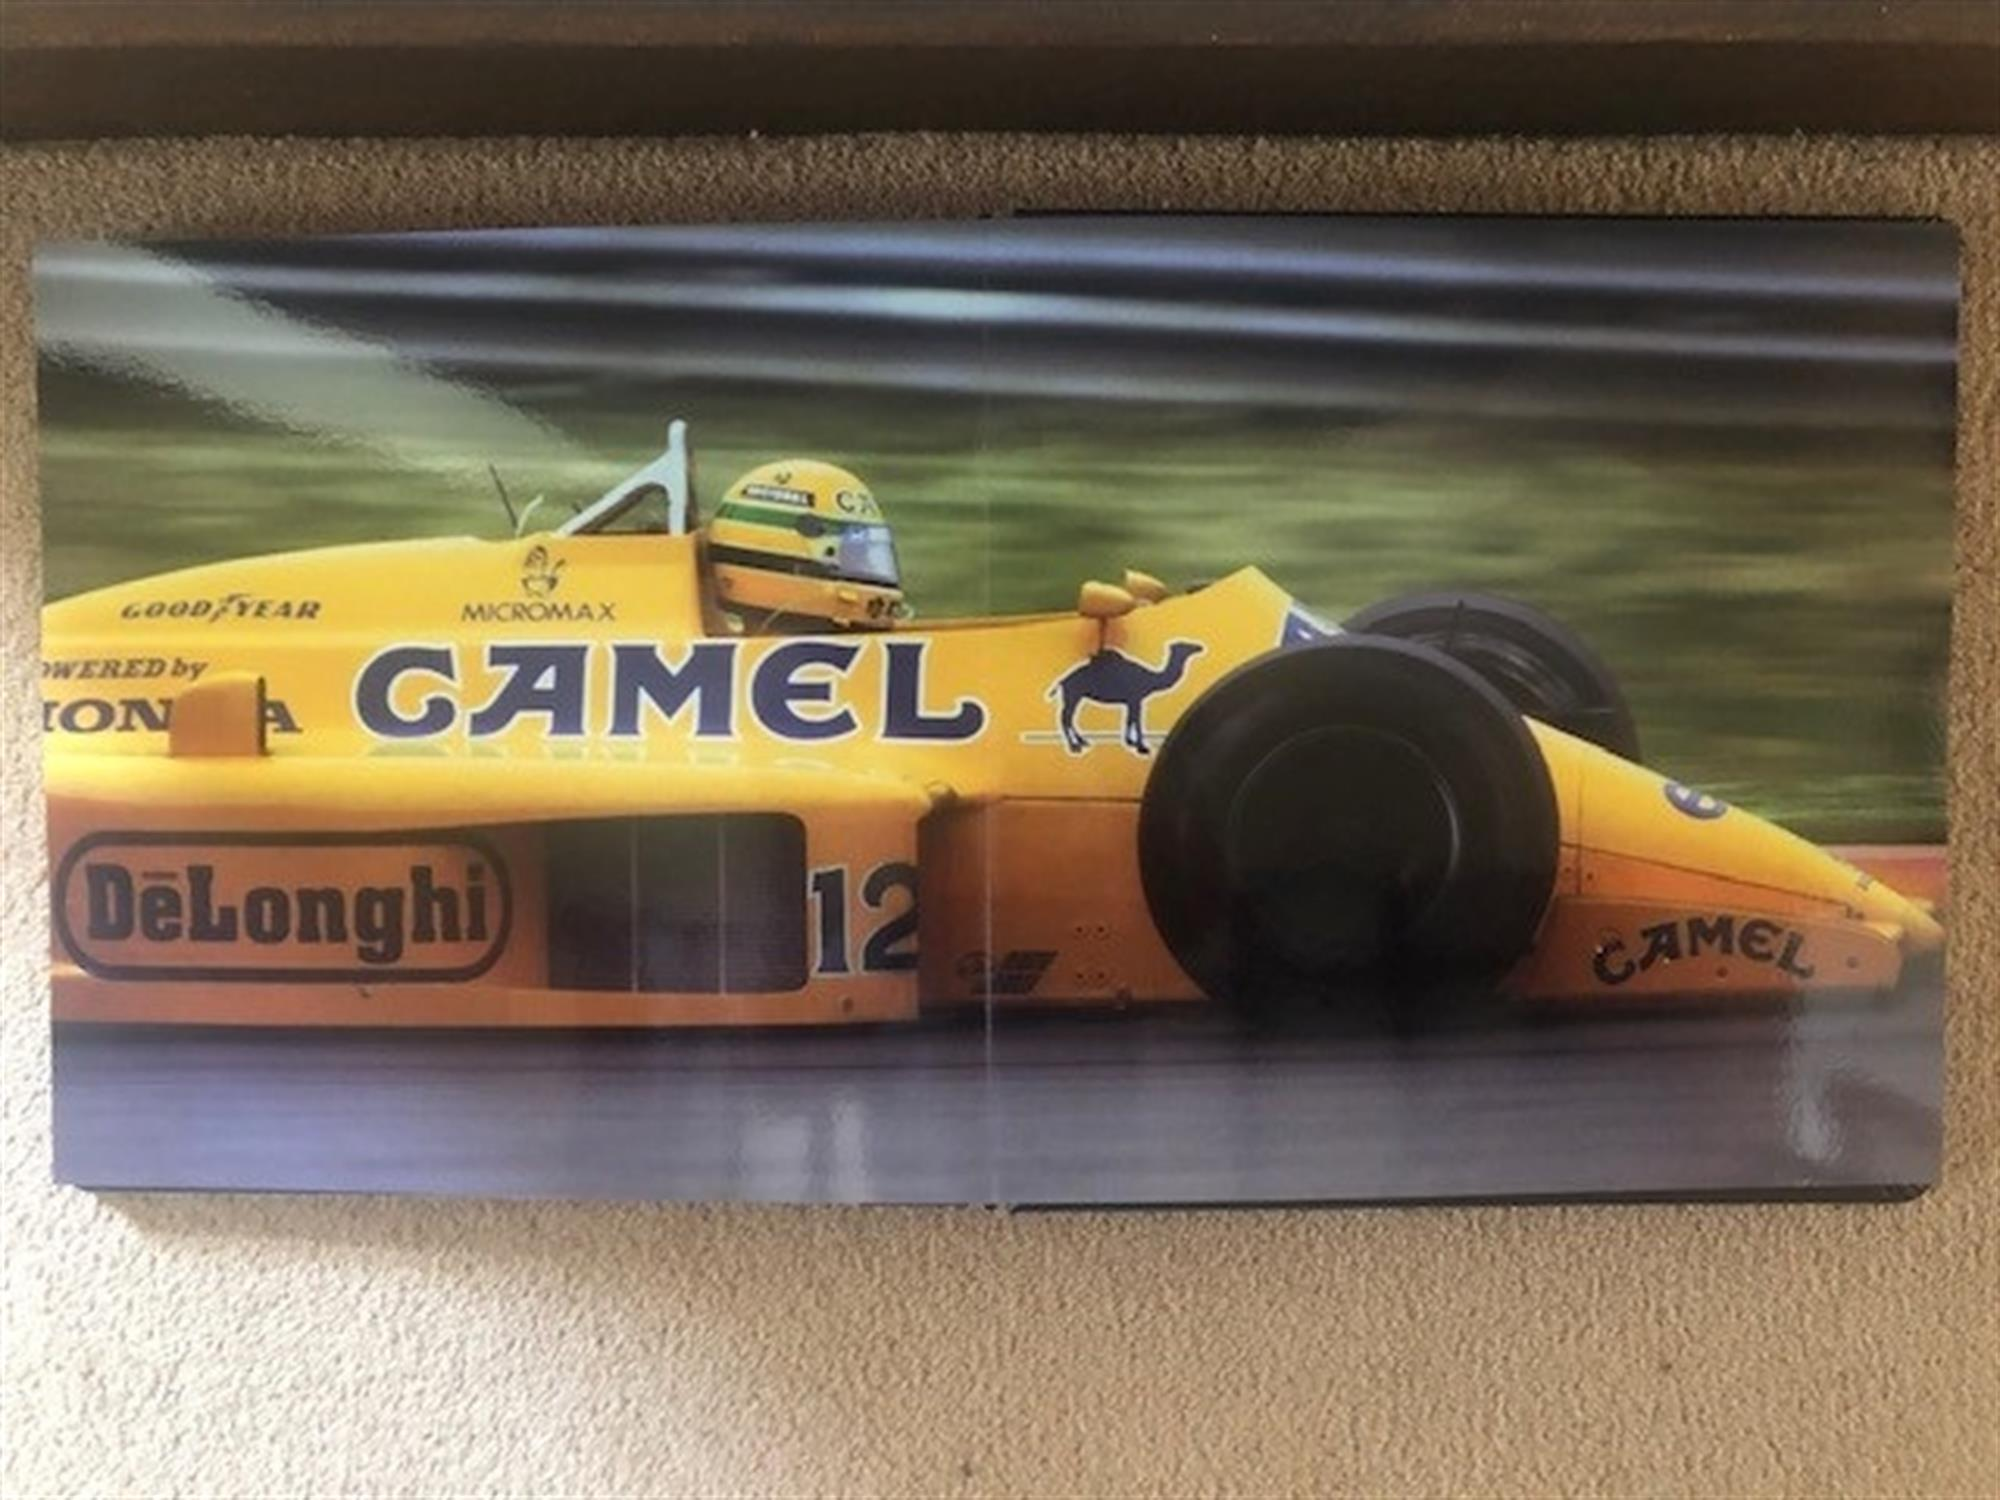 Coffee Table Publication Featuring Ayrton Senna - Image 5 of 6